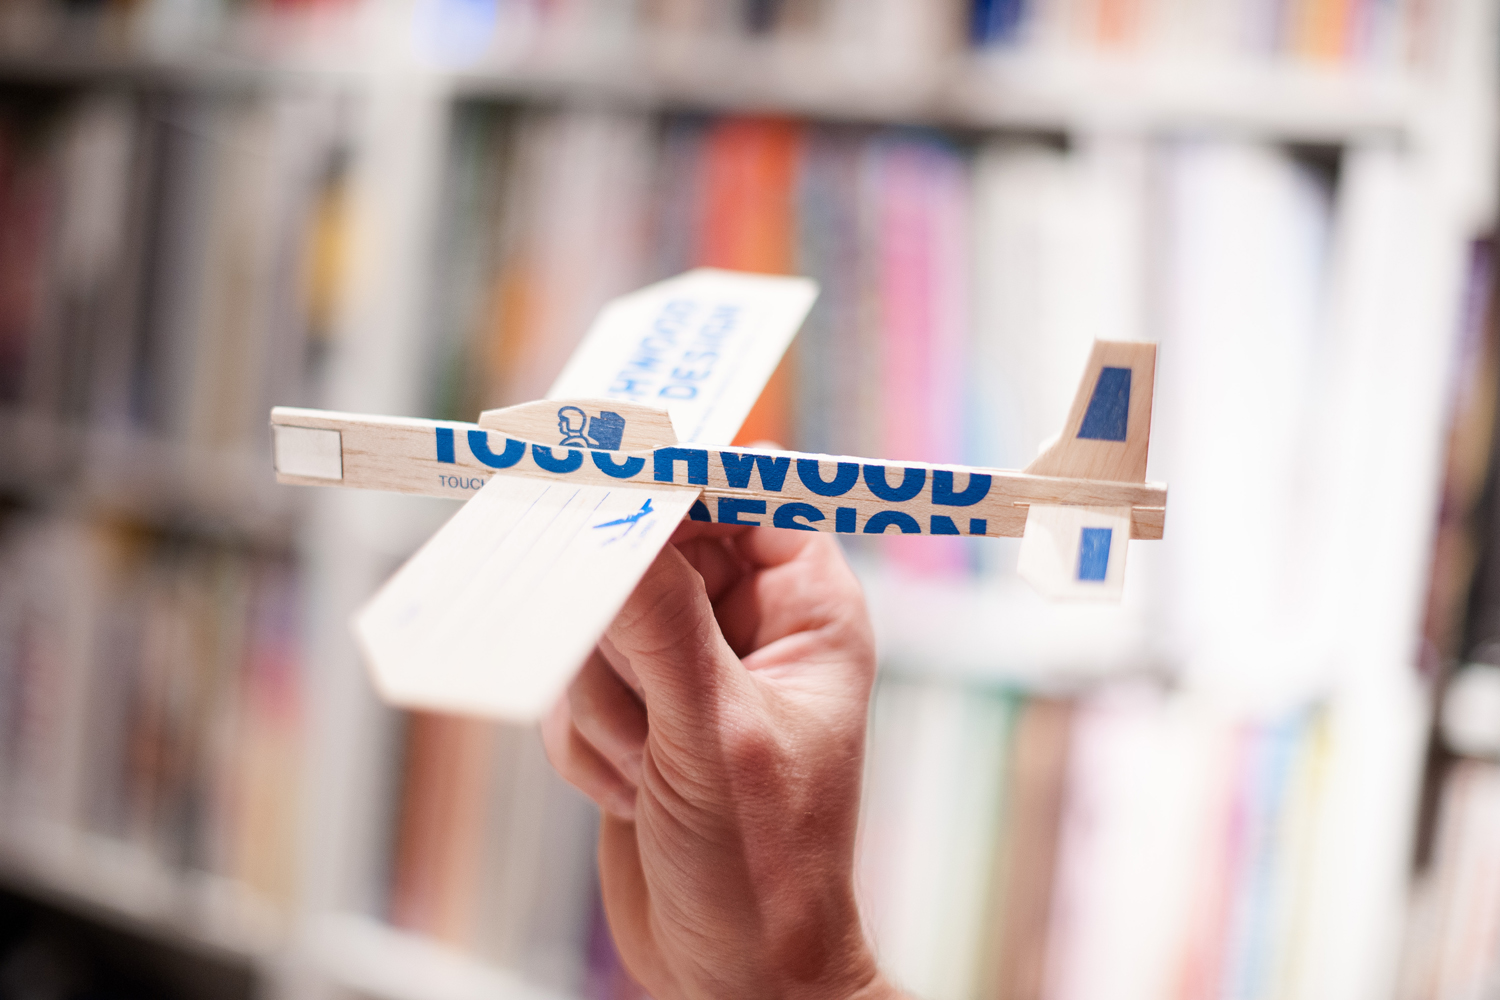 Touchwood Design's model plane delivers nostalgia along with a message to their clients.